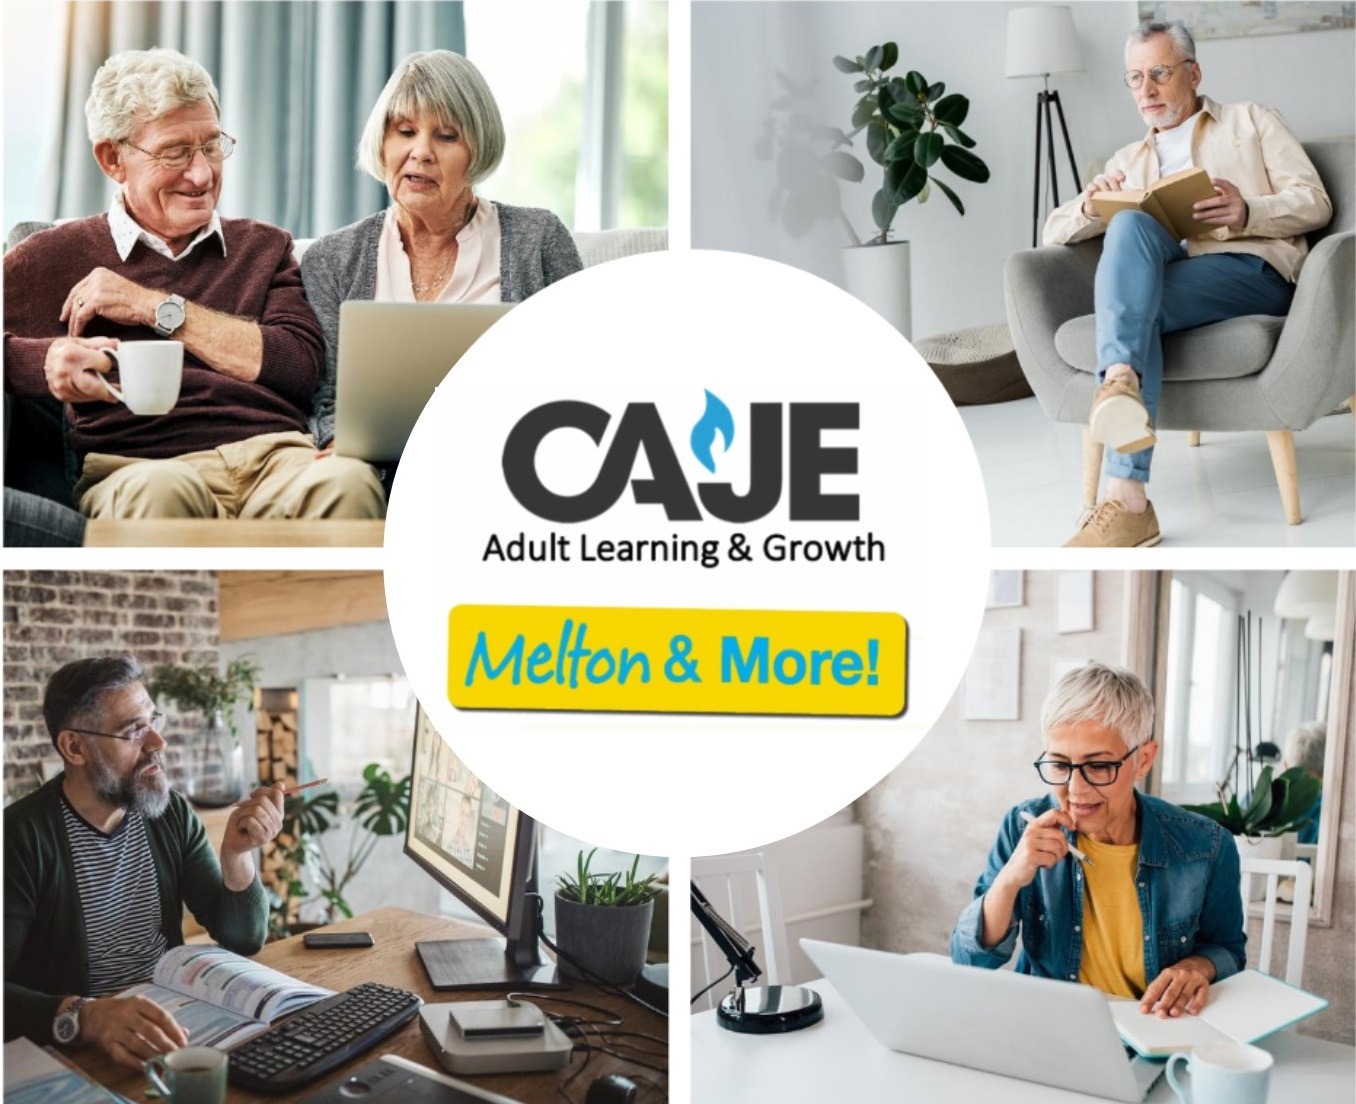 CAJE Adult Learning & Growth Goes Global